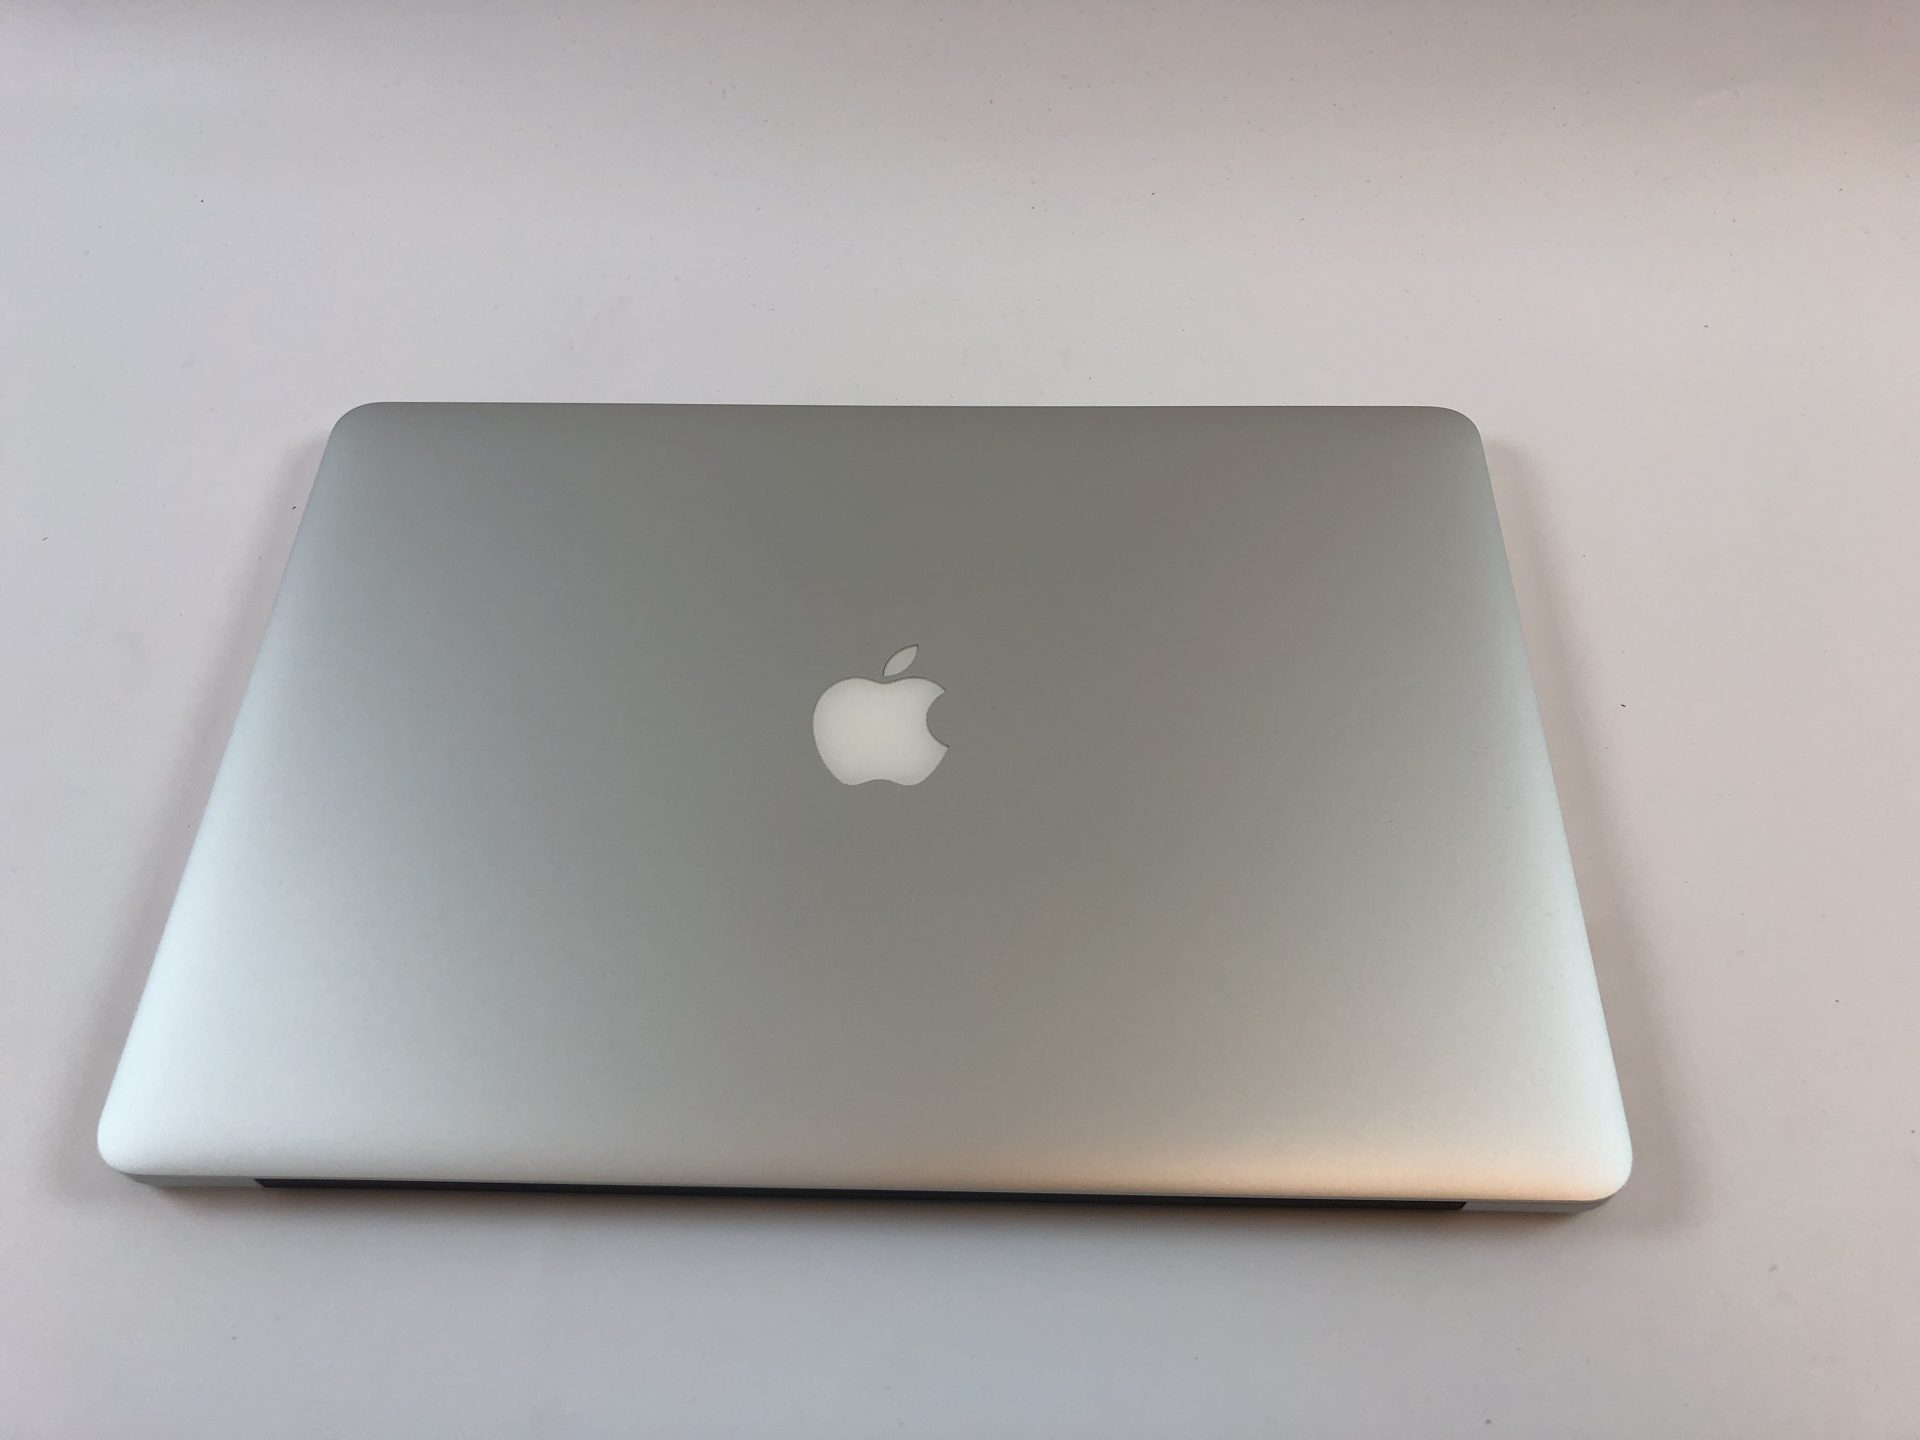 "MacBook Pro Retina 15"" Mid 2014 (Intel Quad-Core i7 2.2 GHz 16 GB RAM 512 GB SSD), Intel Quad-Core i7 2.2 GHz, 16 GB RAM, 512 GB SSD, bild 2"